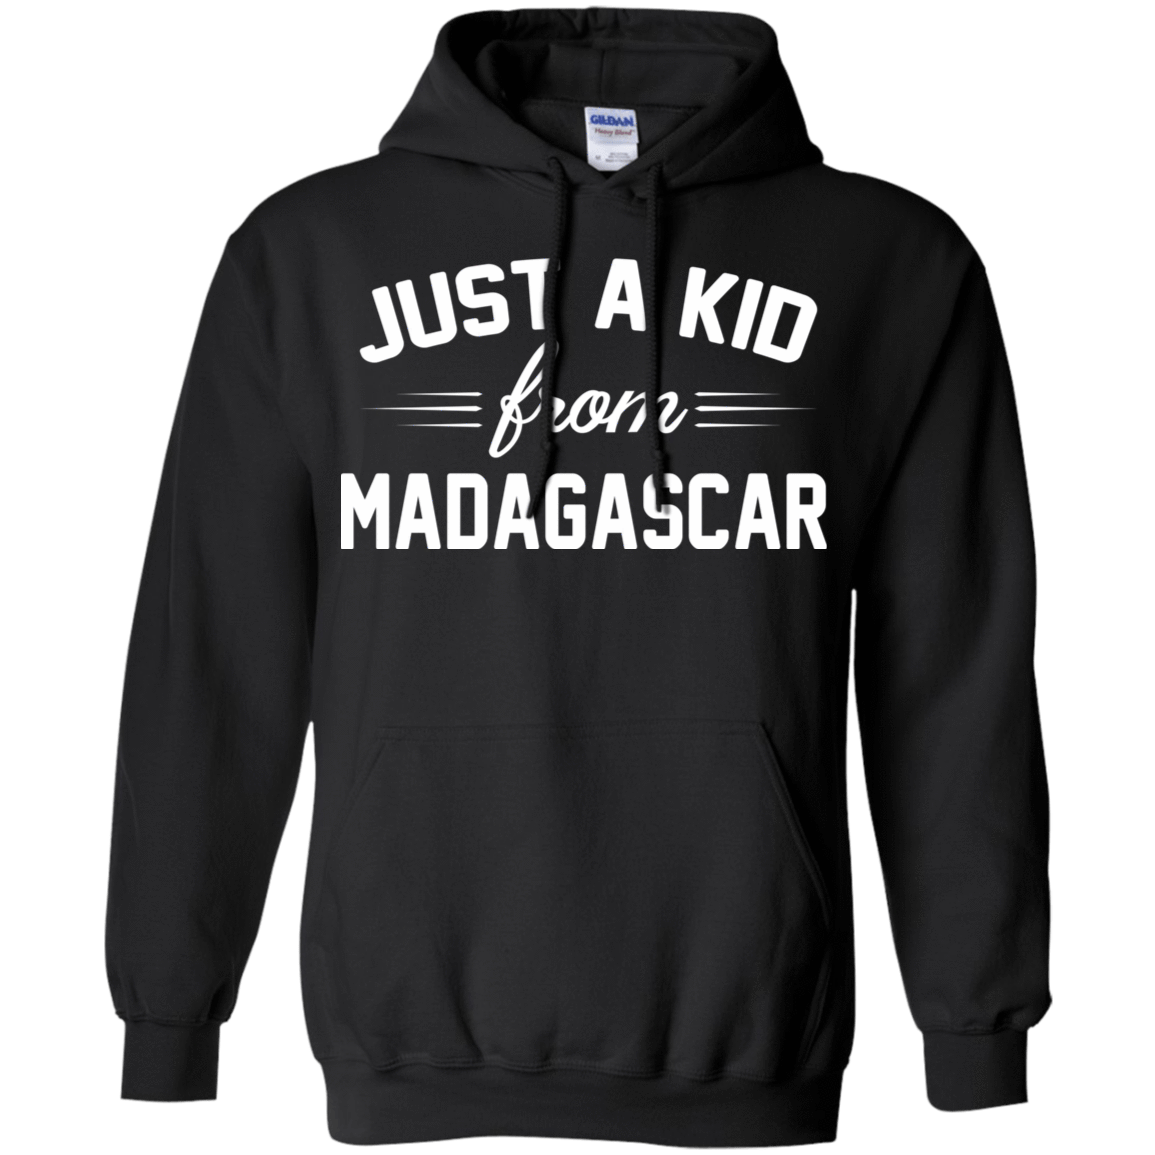 Just a Kid Store | Madagascar T-Shirts, Hoodie, Tank 541-4740-72091600-23087 - Tee Ript